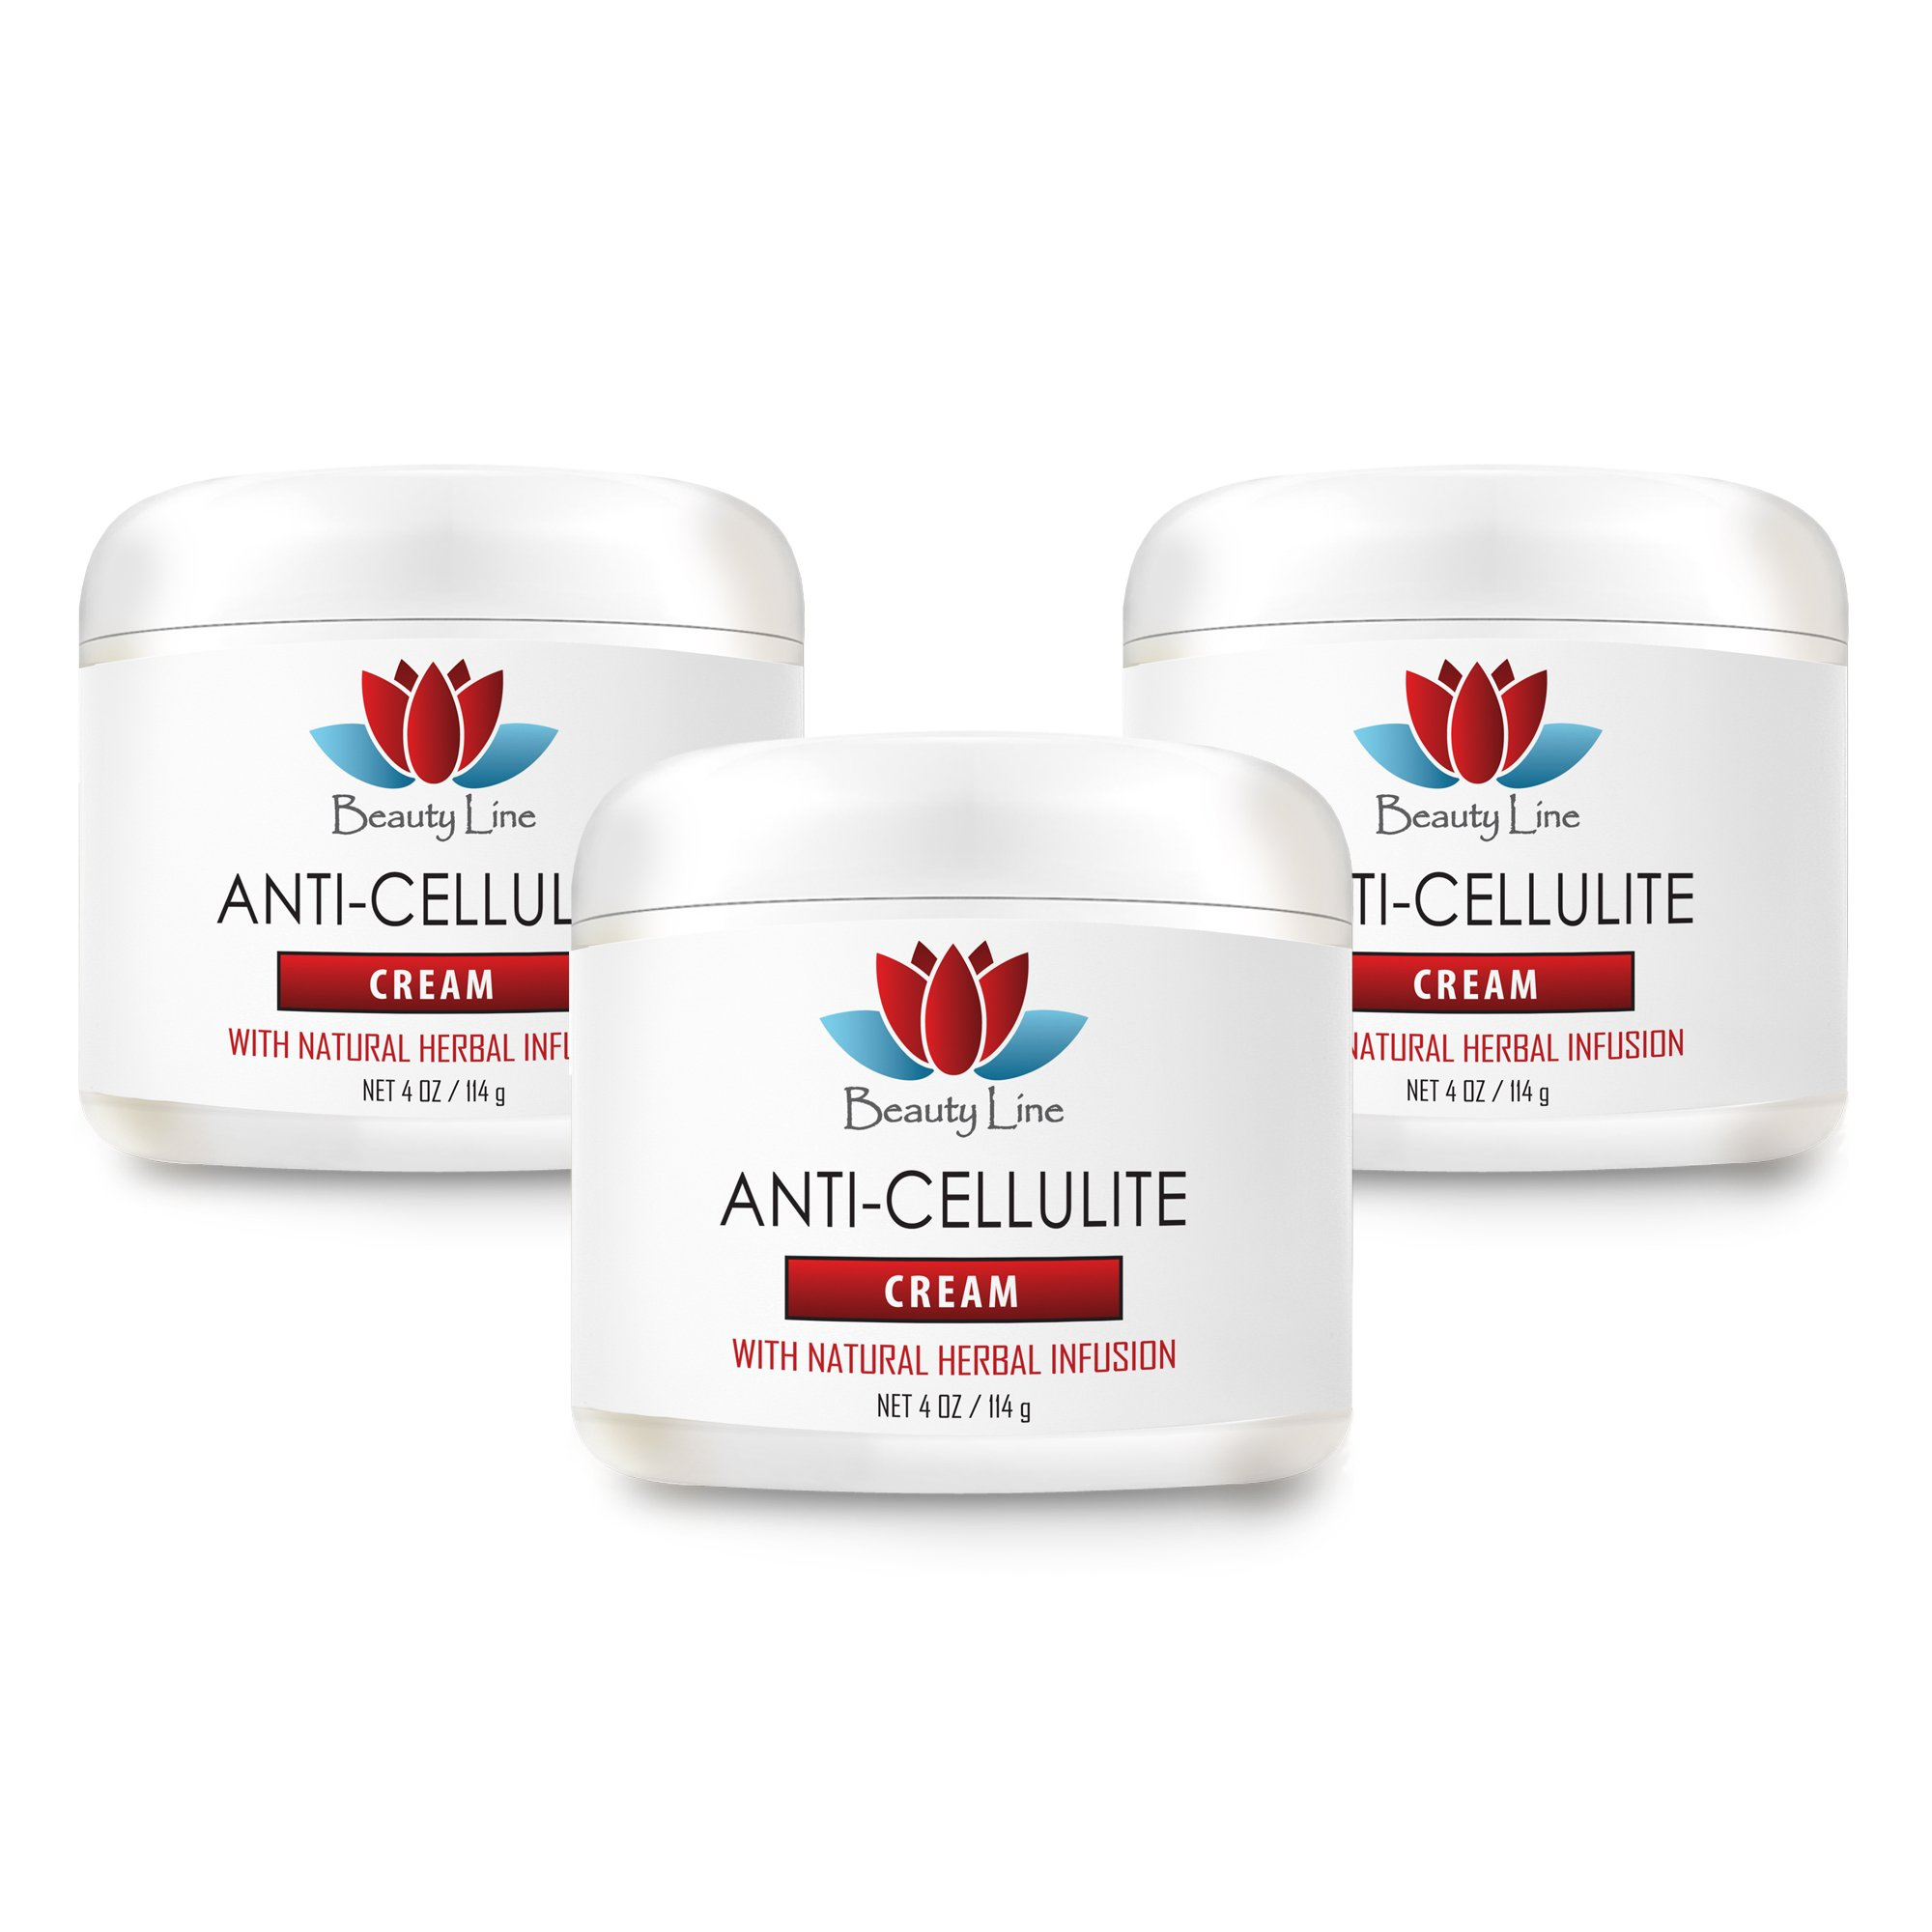 Restore skin conditioning creme - ANTI CELLULITE CREAM (with Natural Herbal Infusion) - Cellulite treating supplements - 3 Jars